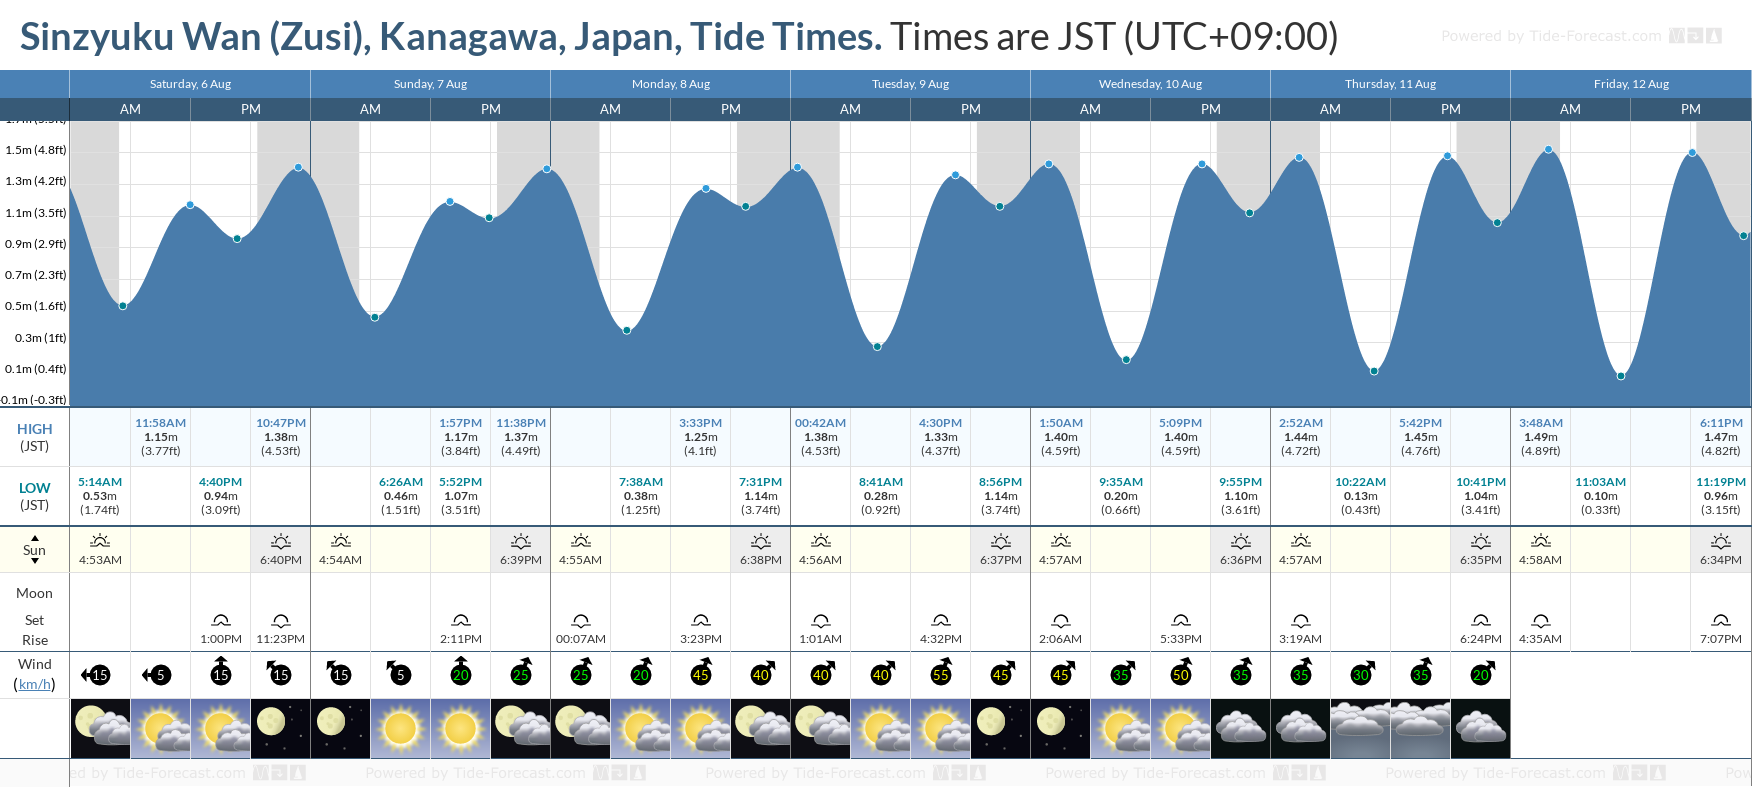 Sinzyuku Wan (Zusi), Kanagawa, Japan Tide Chart including high and low tide tide times for the next 7 days